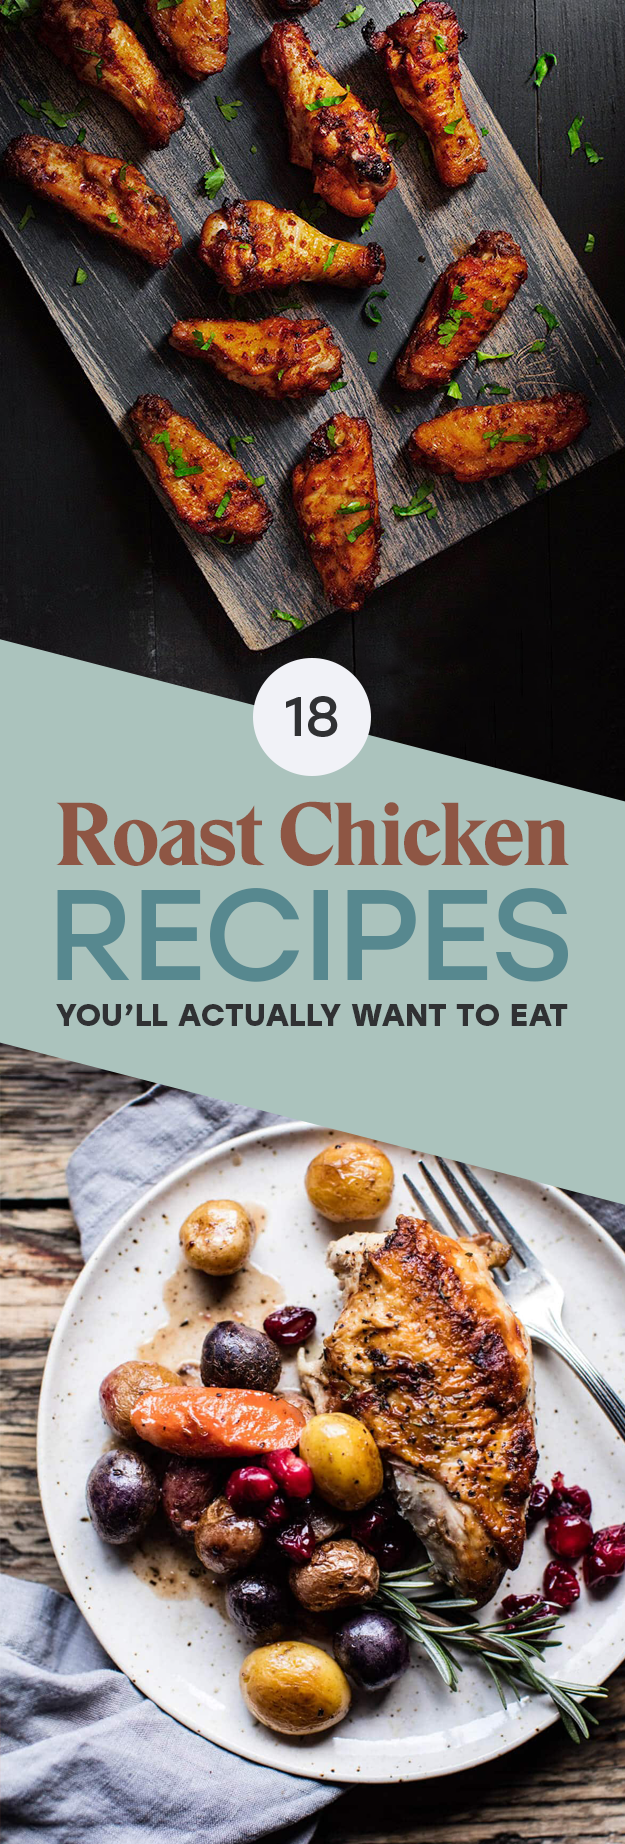 Sub buzz 5335 1515514960 7g 18 roast chicken recipes youll actually want to eat forumfinder Images